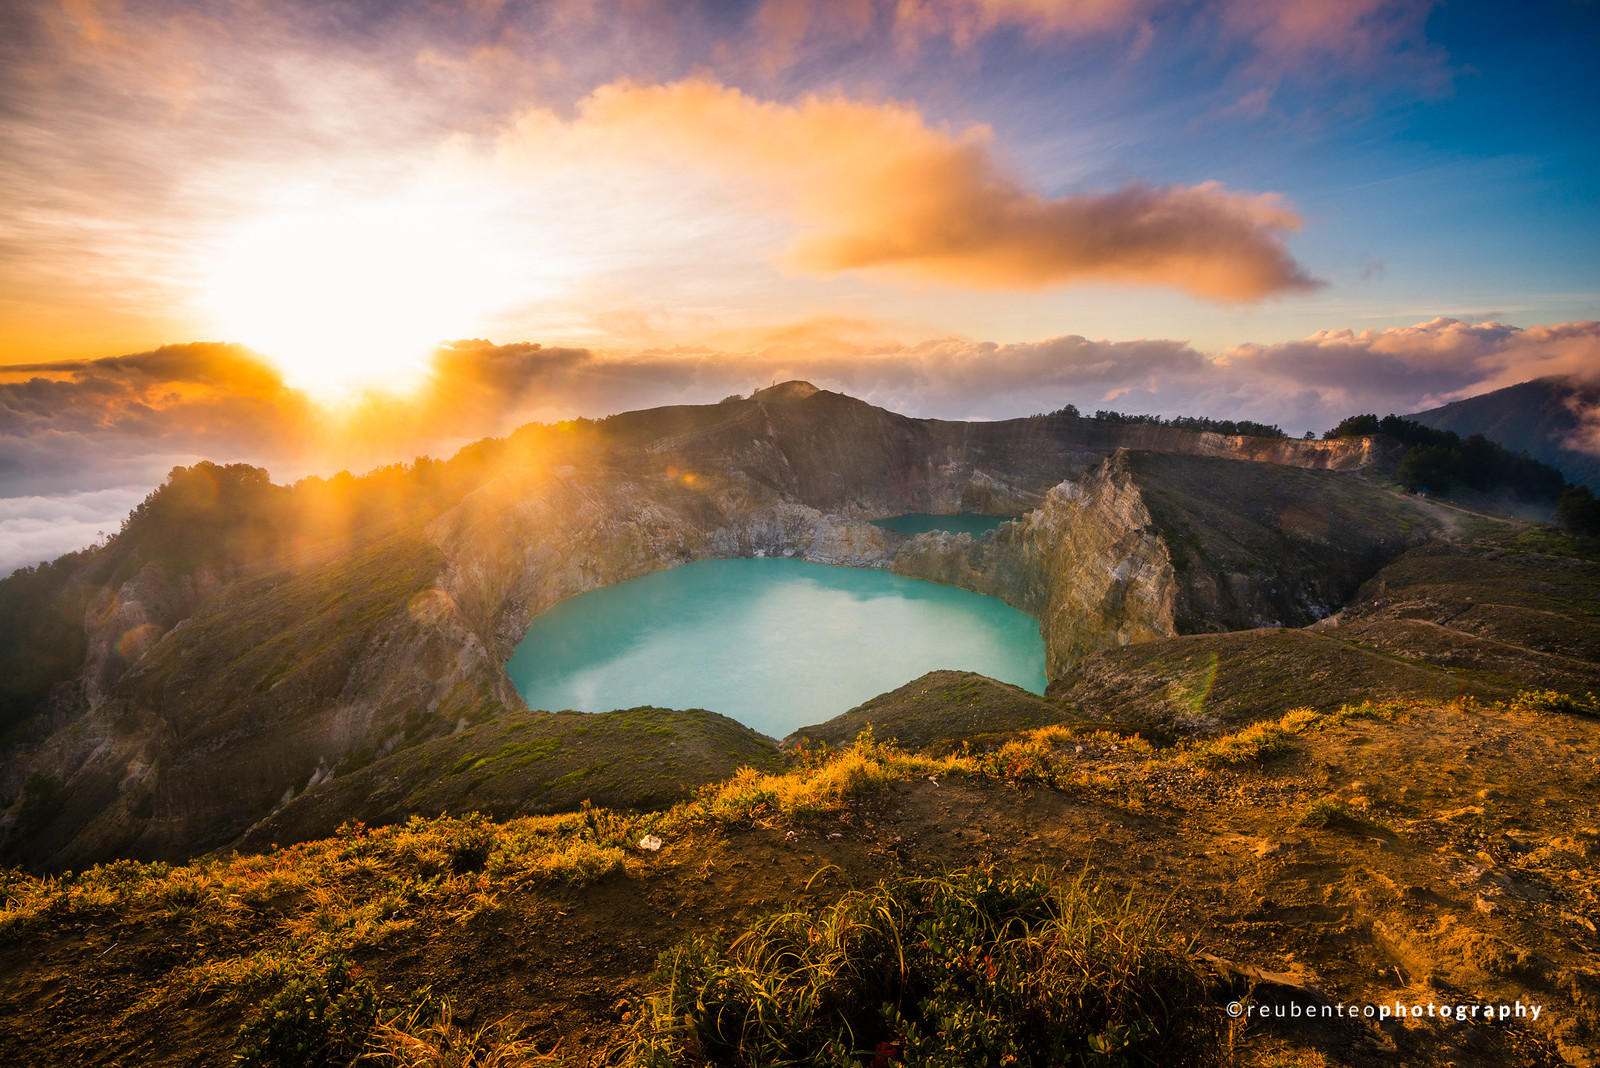 Sunrise at Kelimutu Crater Lake, Flores